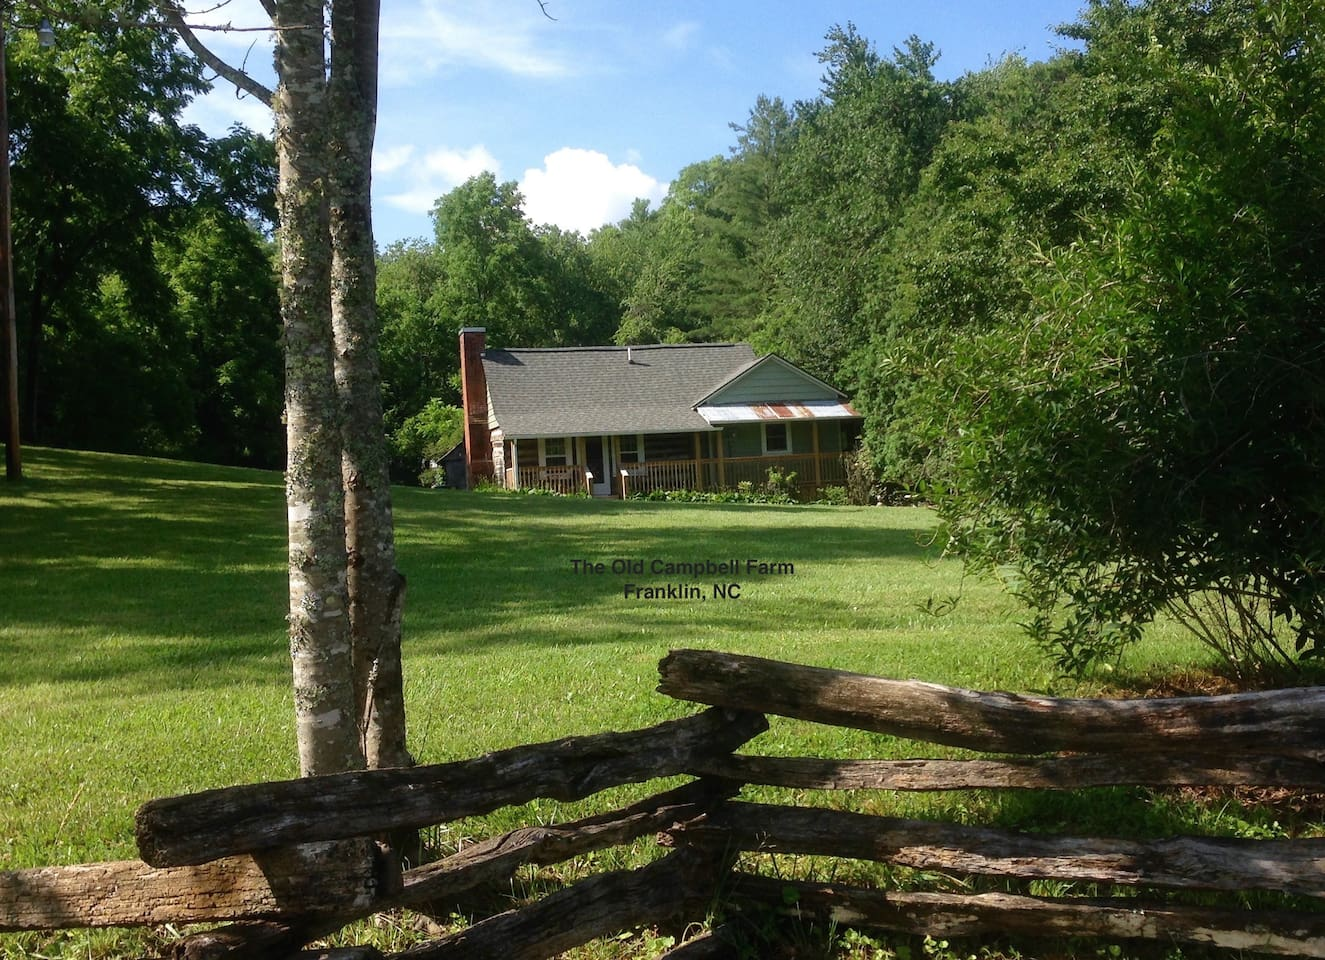 The Old Campbell Farm is located in the beautiful mountains of western NC.